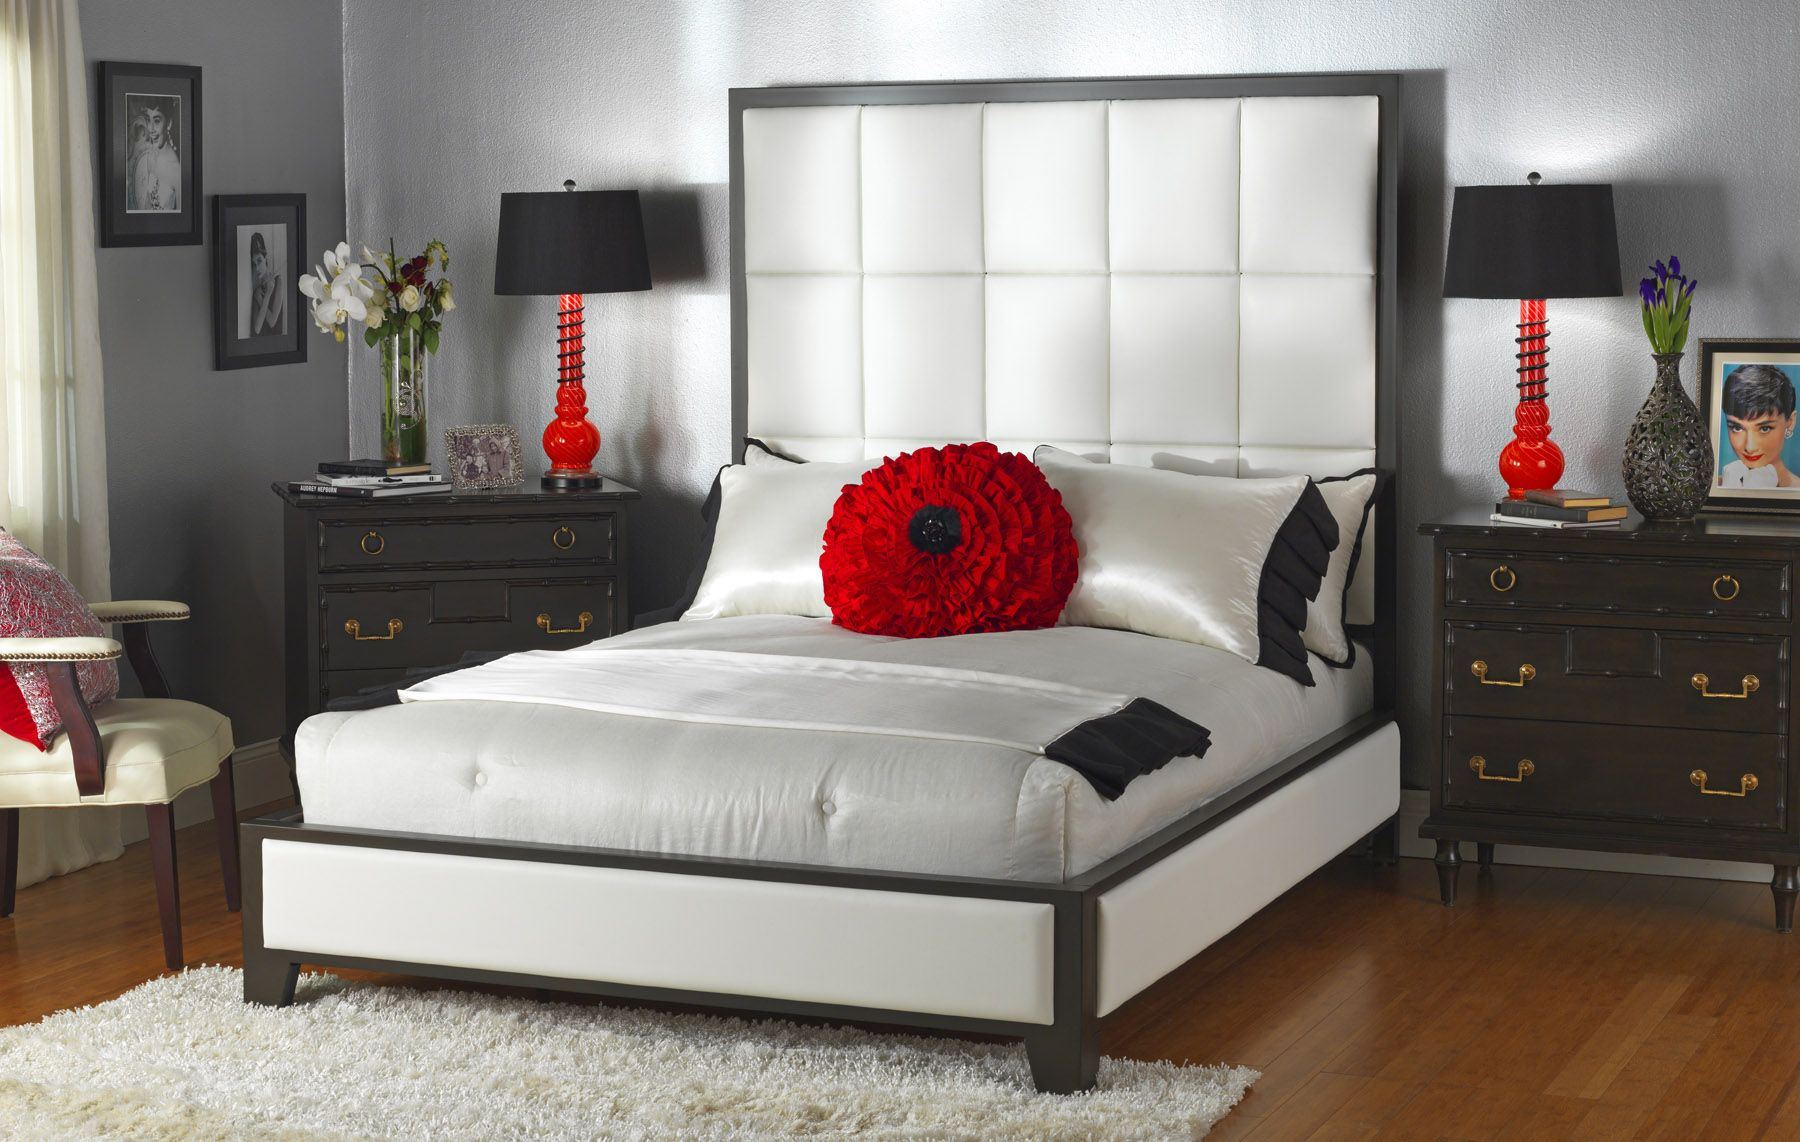 New platform bed with upholstered headboard from